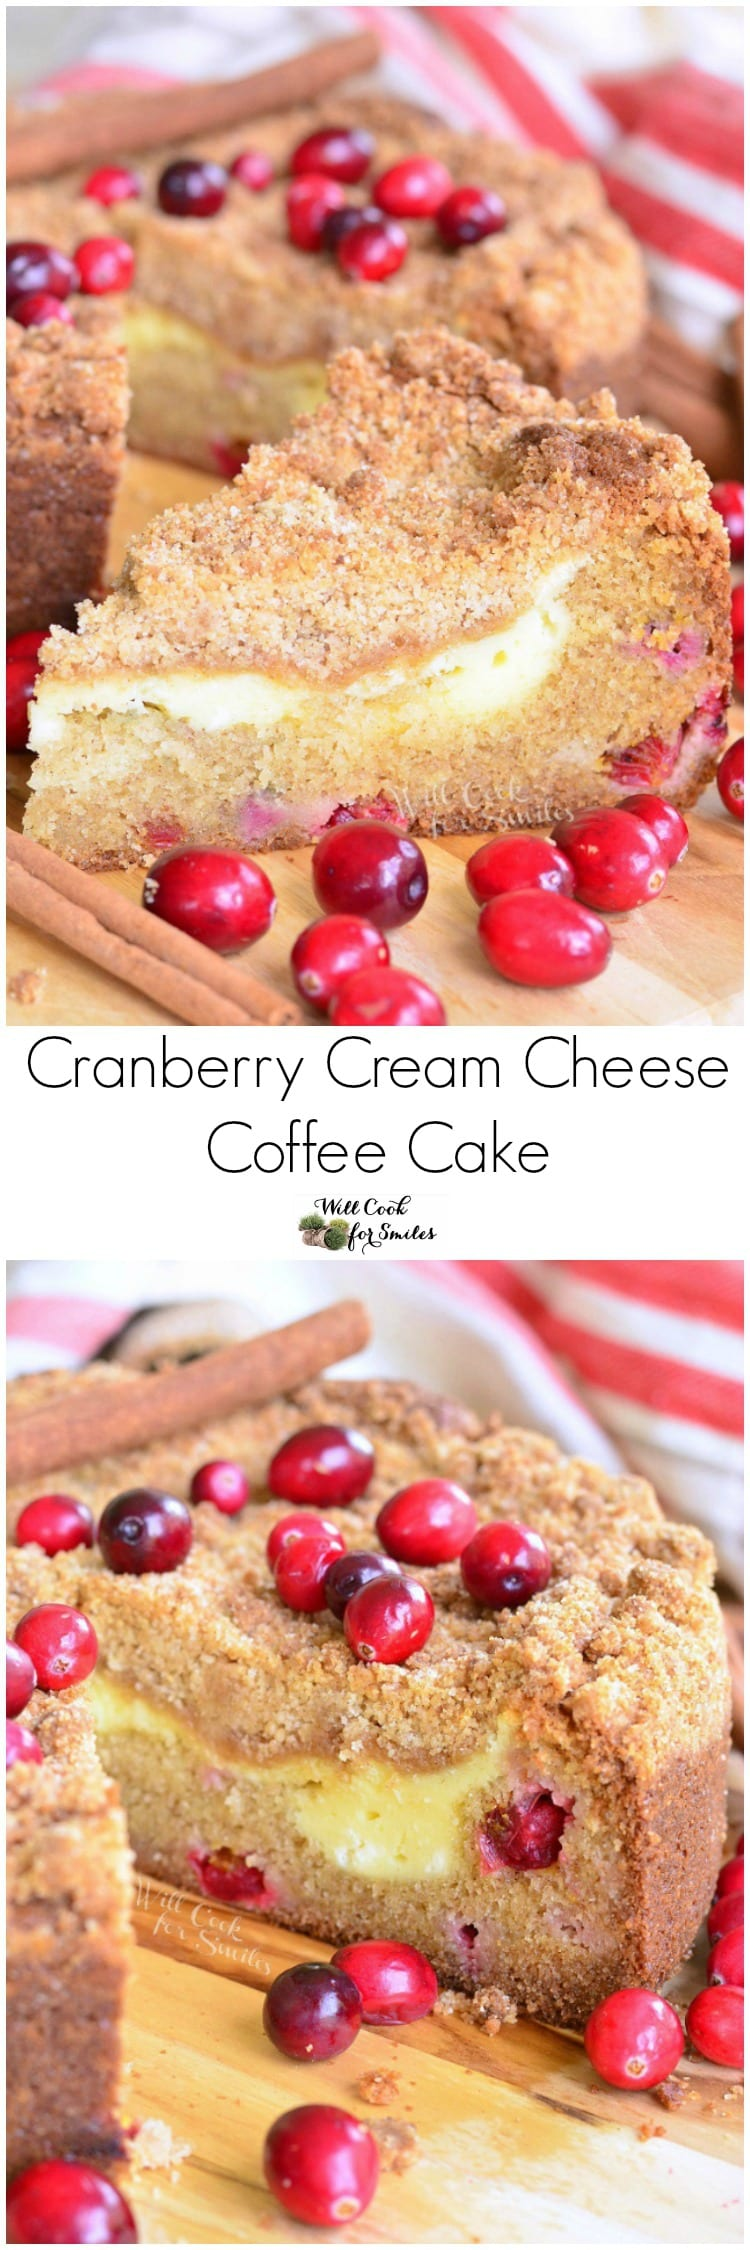 Collage top photo A slice of Cranberry Cream Cheese Coffee Cake on a cutting board with the rest of the cake in the background bottom photo of cake with slice missing